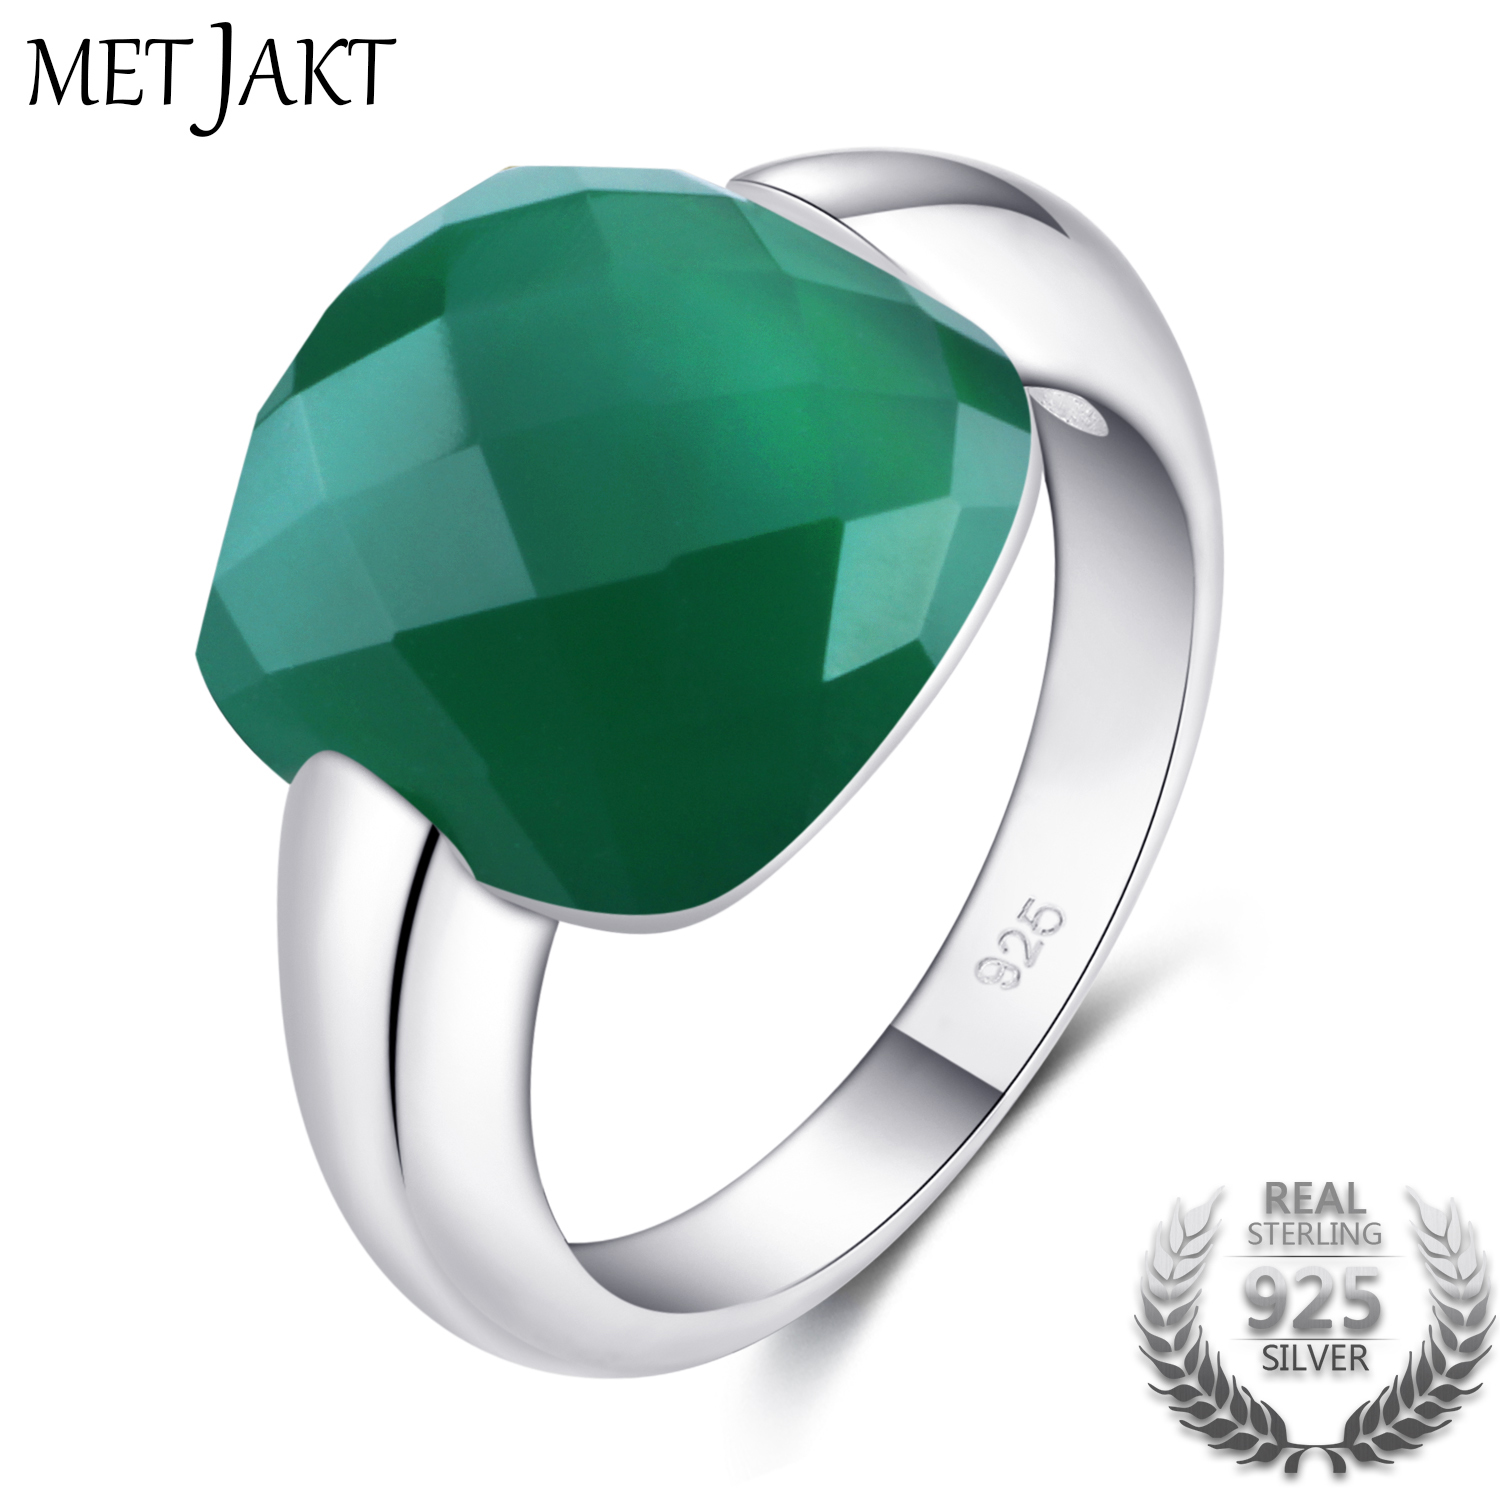 MetJakt Classic Natural Gemstone Square Emerald Color Rings Solid 925 Sterling Silver Agate Ring for Women Vintage JewelryMetJakt Classic Natural Gemstone Square Emerald Color Rings Solid 925 Sterling Silver Agate Ring for Women Vintage Jewelry